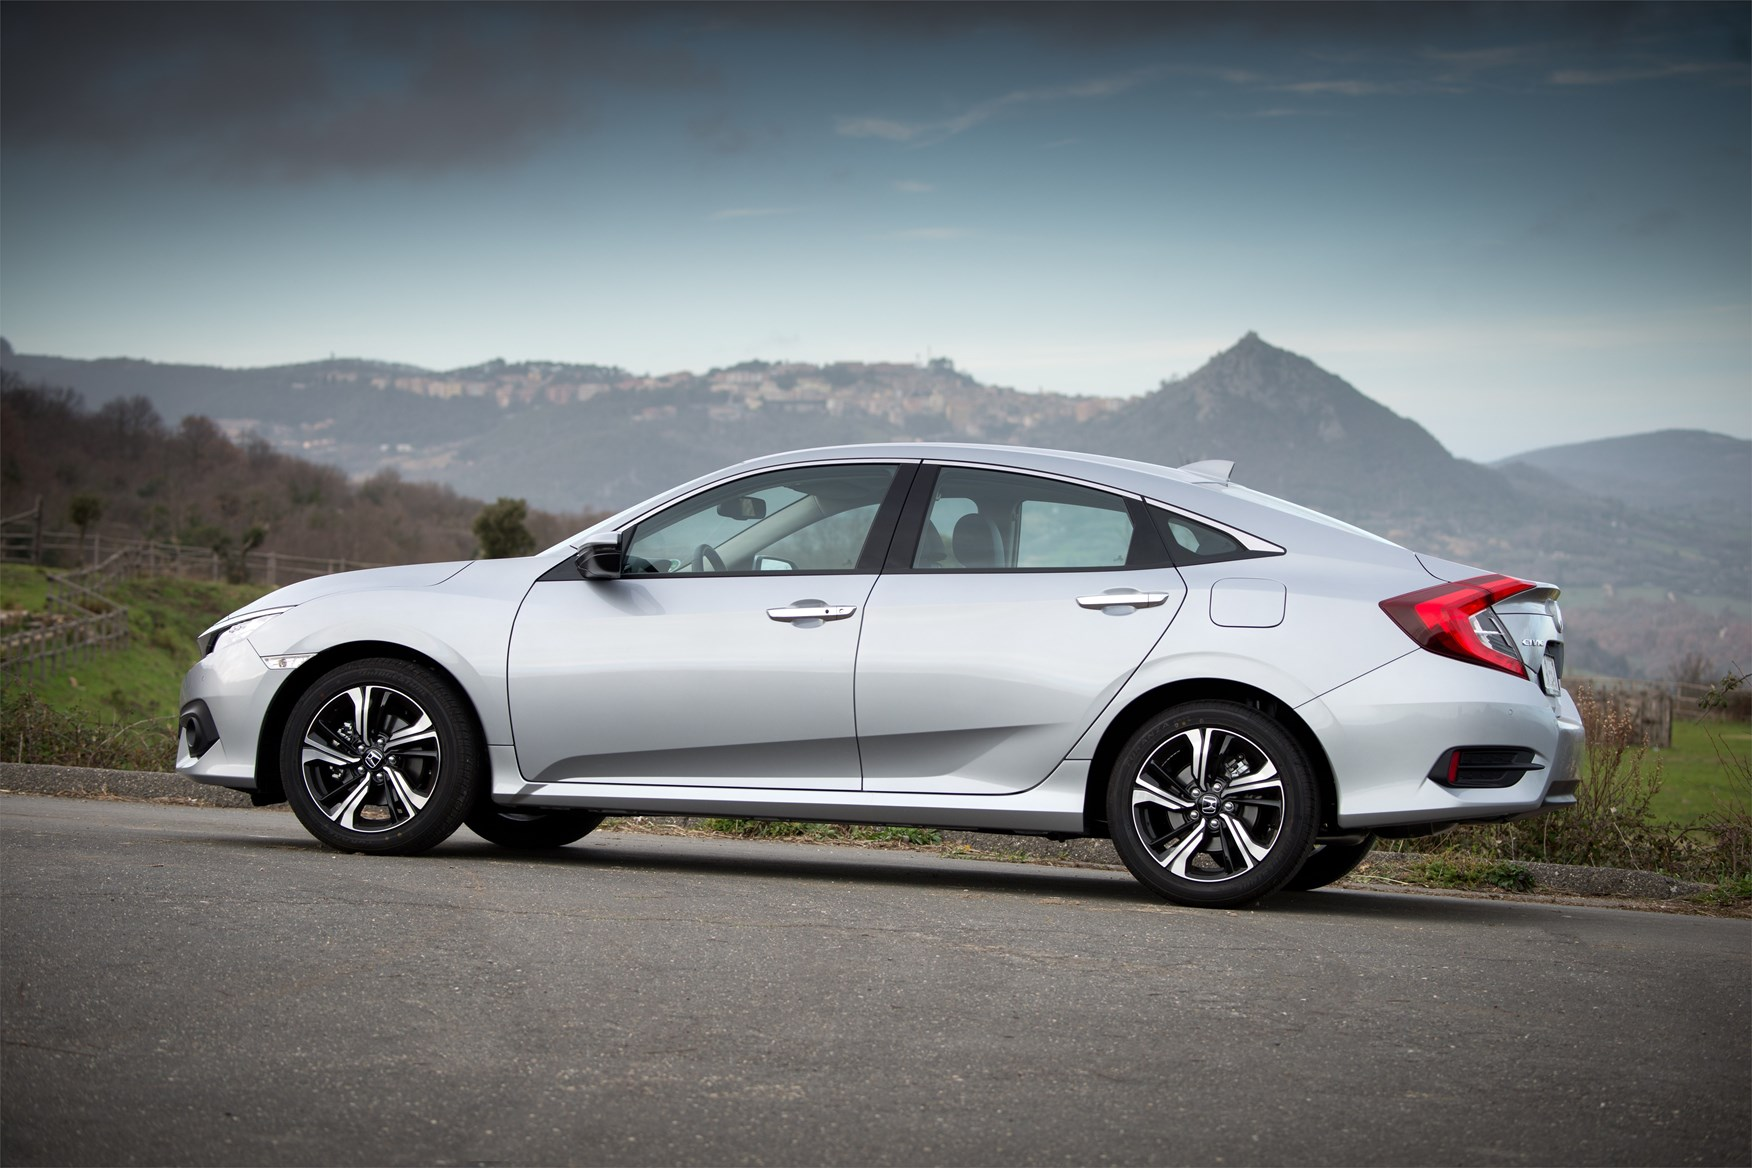 Honda Civic Saloon Review (2019)